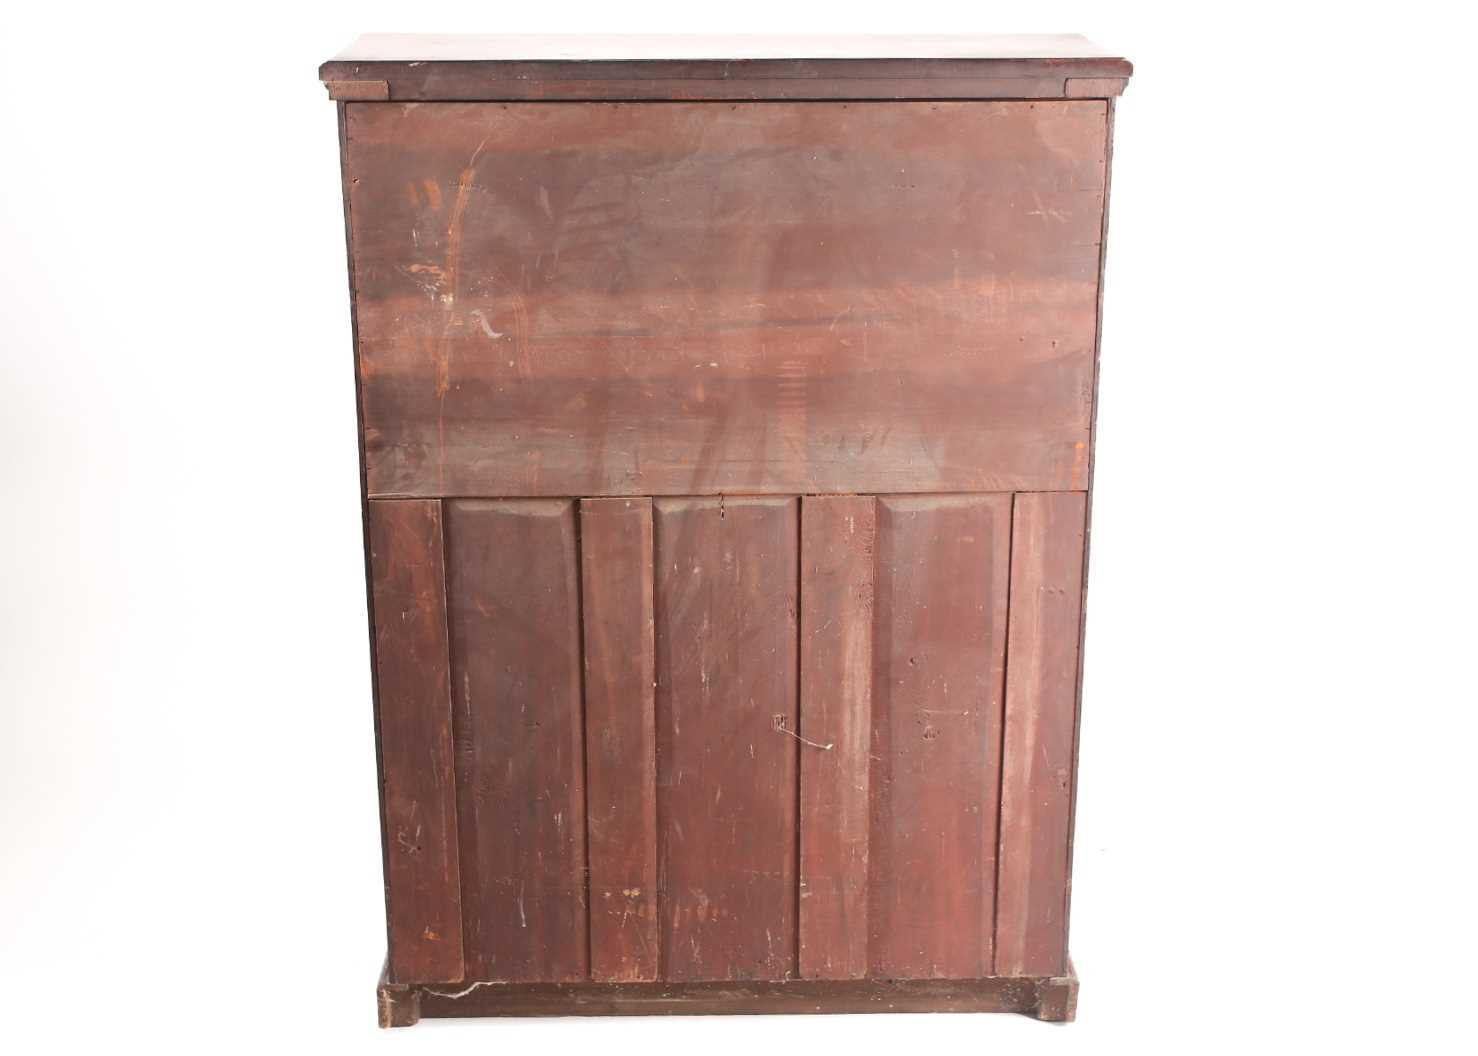 A late 19th-century Aesthetic design walnut fall front secretaire with fitted and leathered - Image 2 of 6